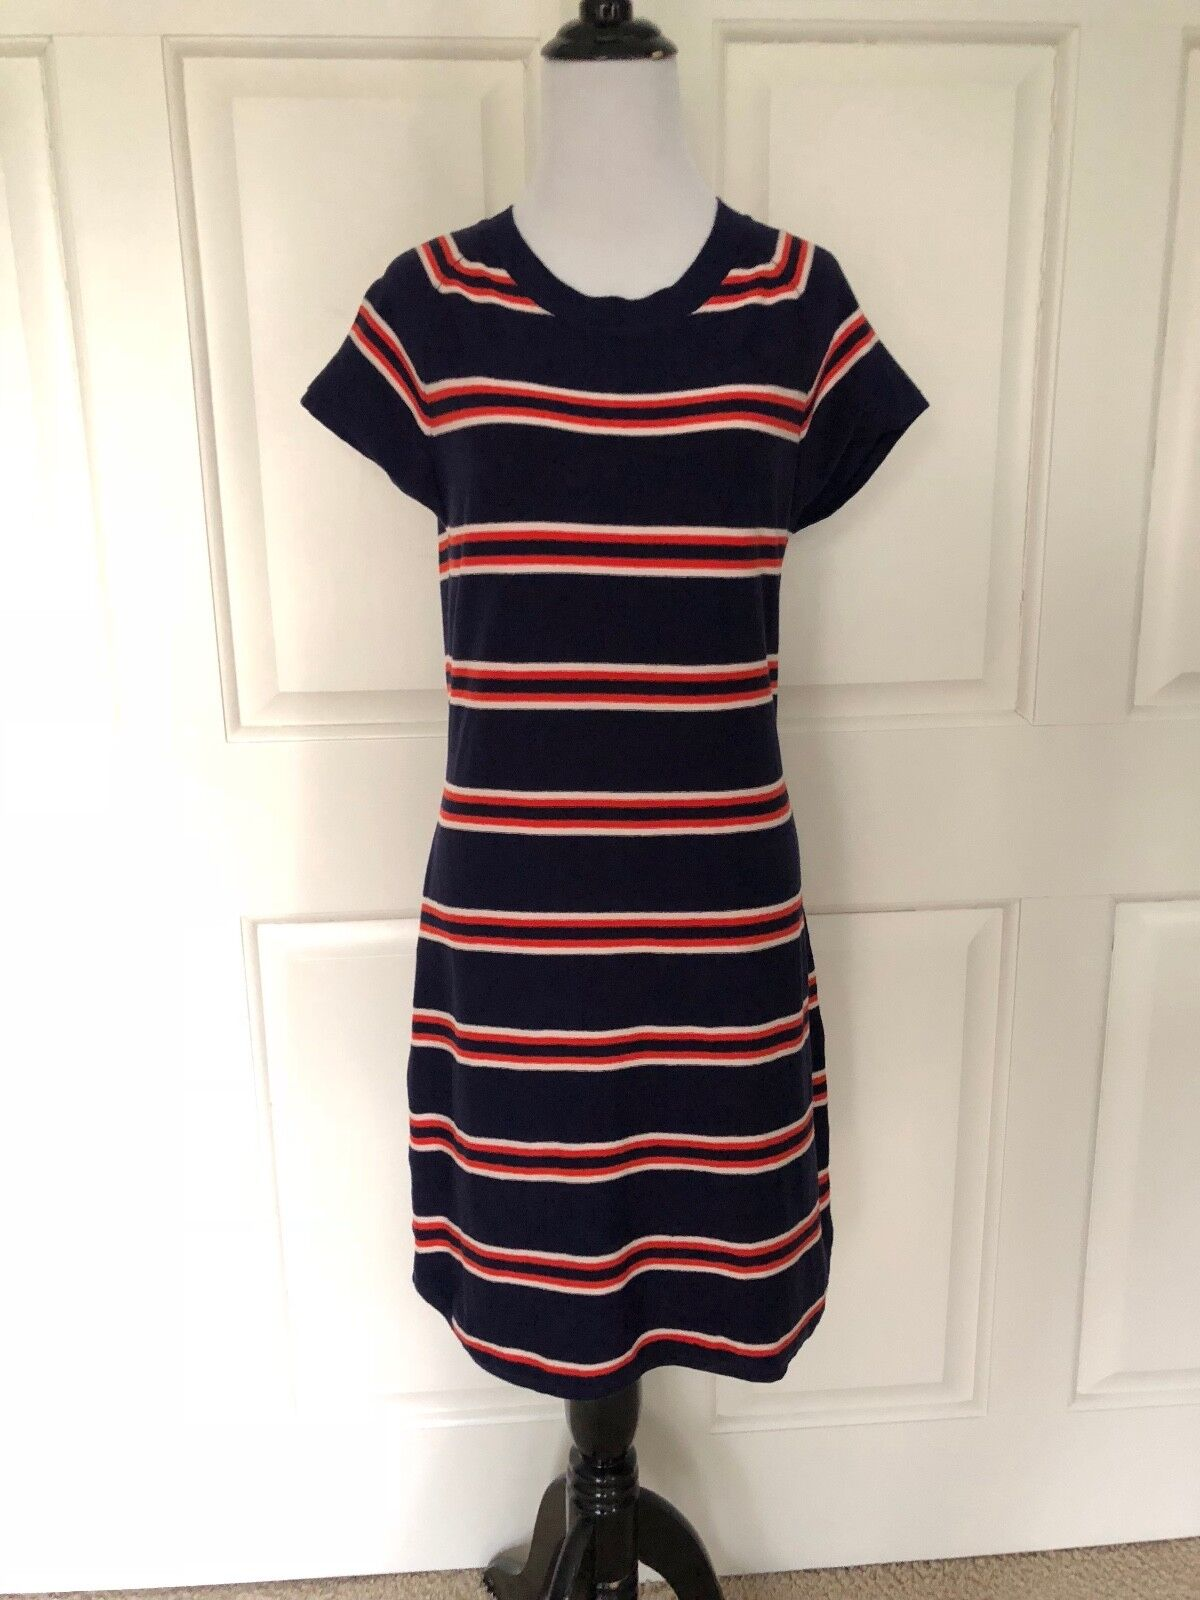 SILK KNIT SUMMER DRESS FROM CREMIEUX - NAVY, Weiß & Orange - MEDIUM - EUC